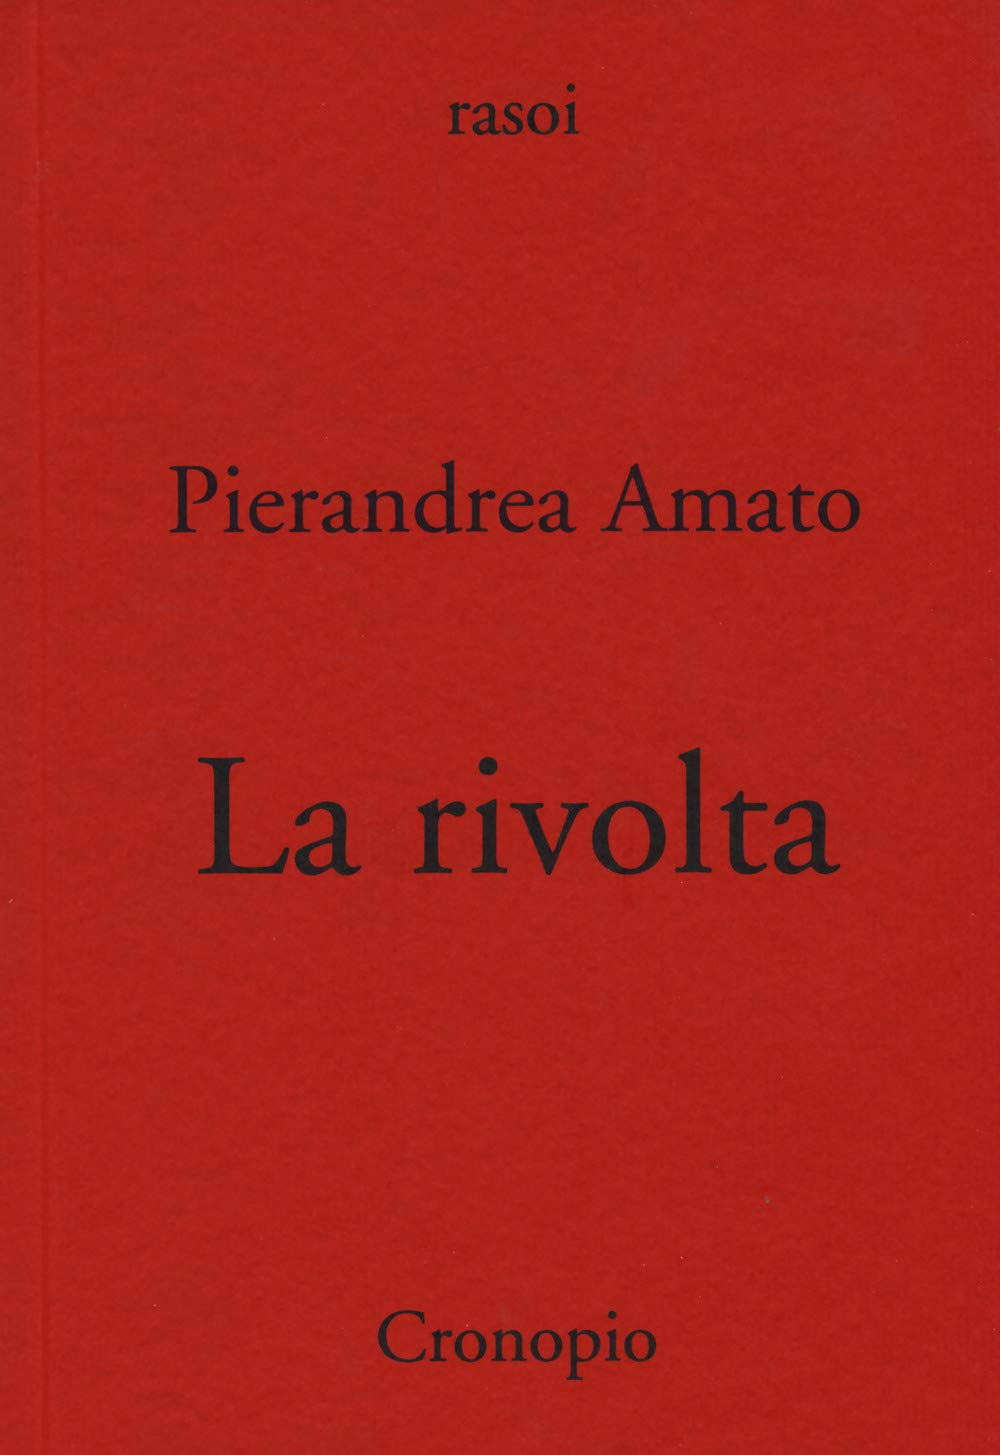 Pierandrea Amato